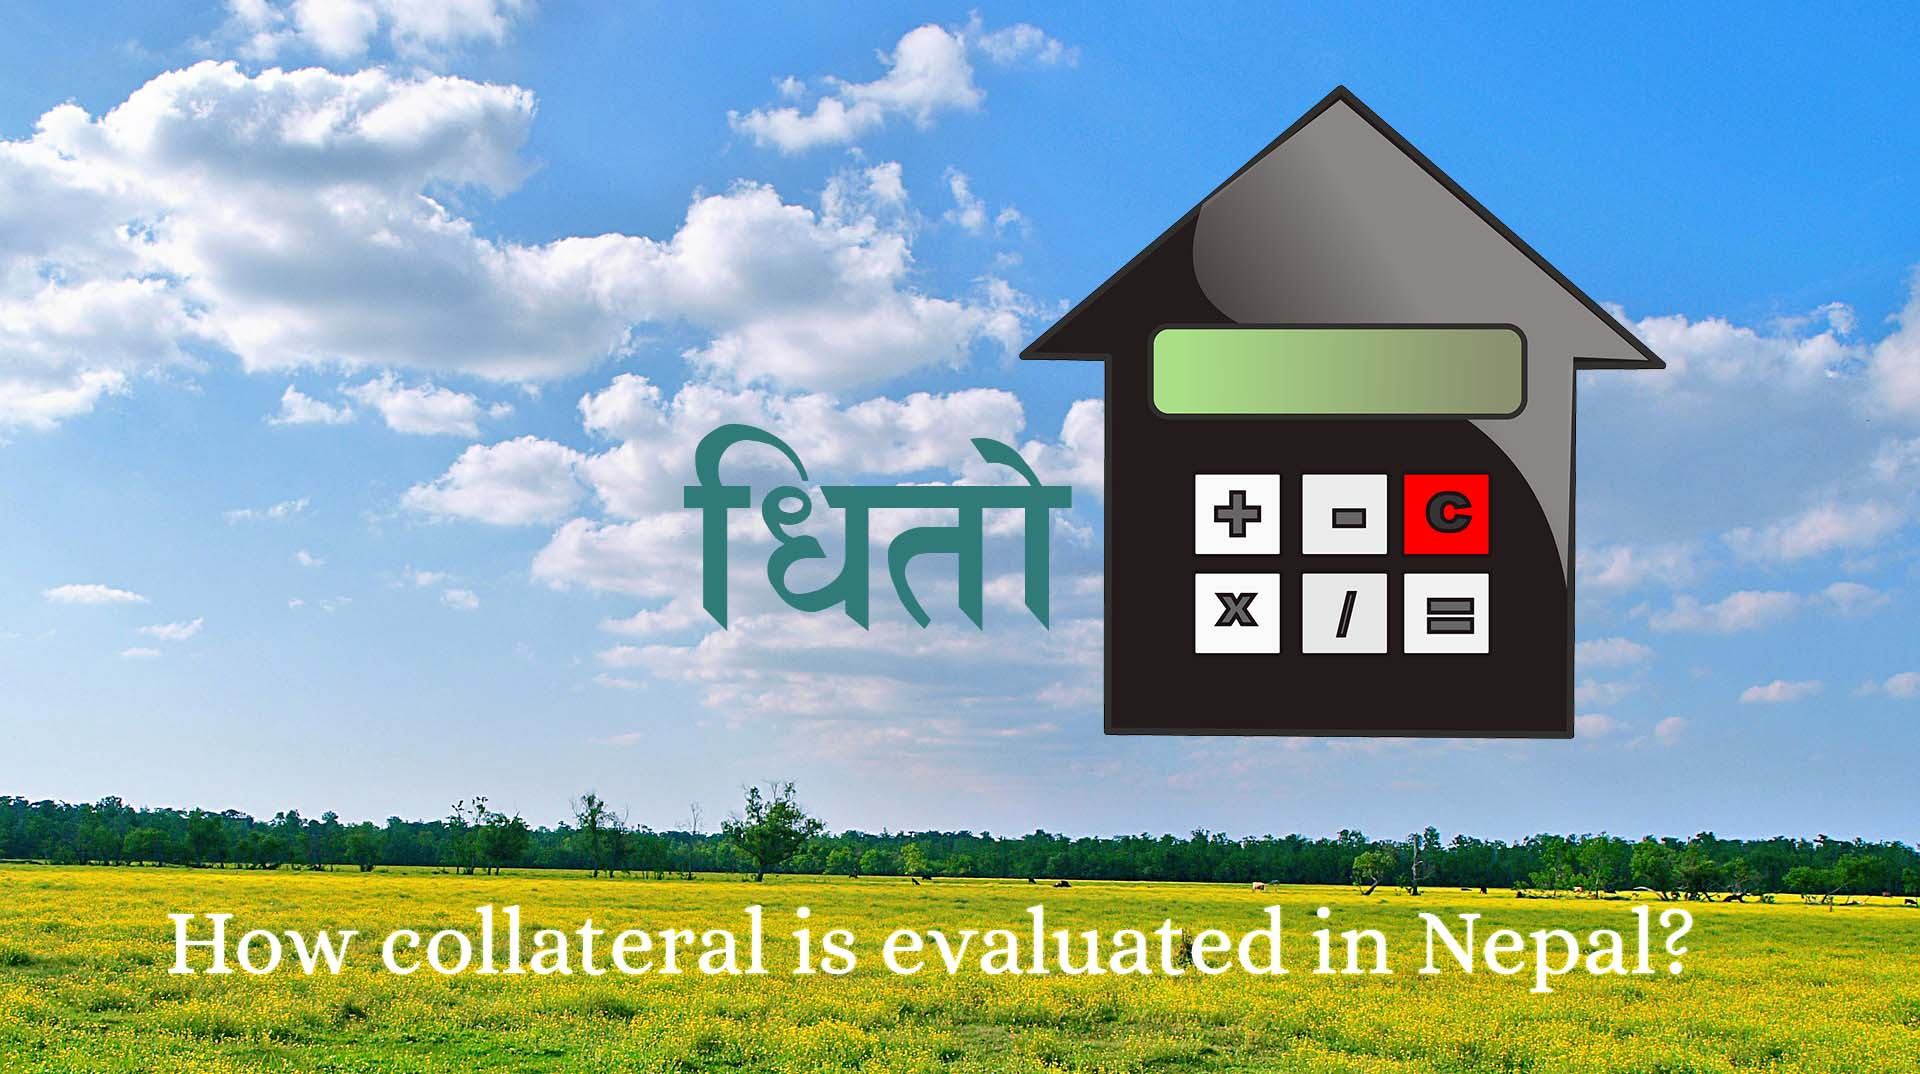 This is how collateral is evaluated in Nepal